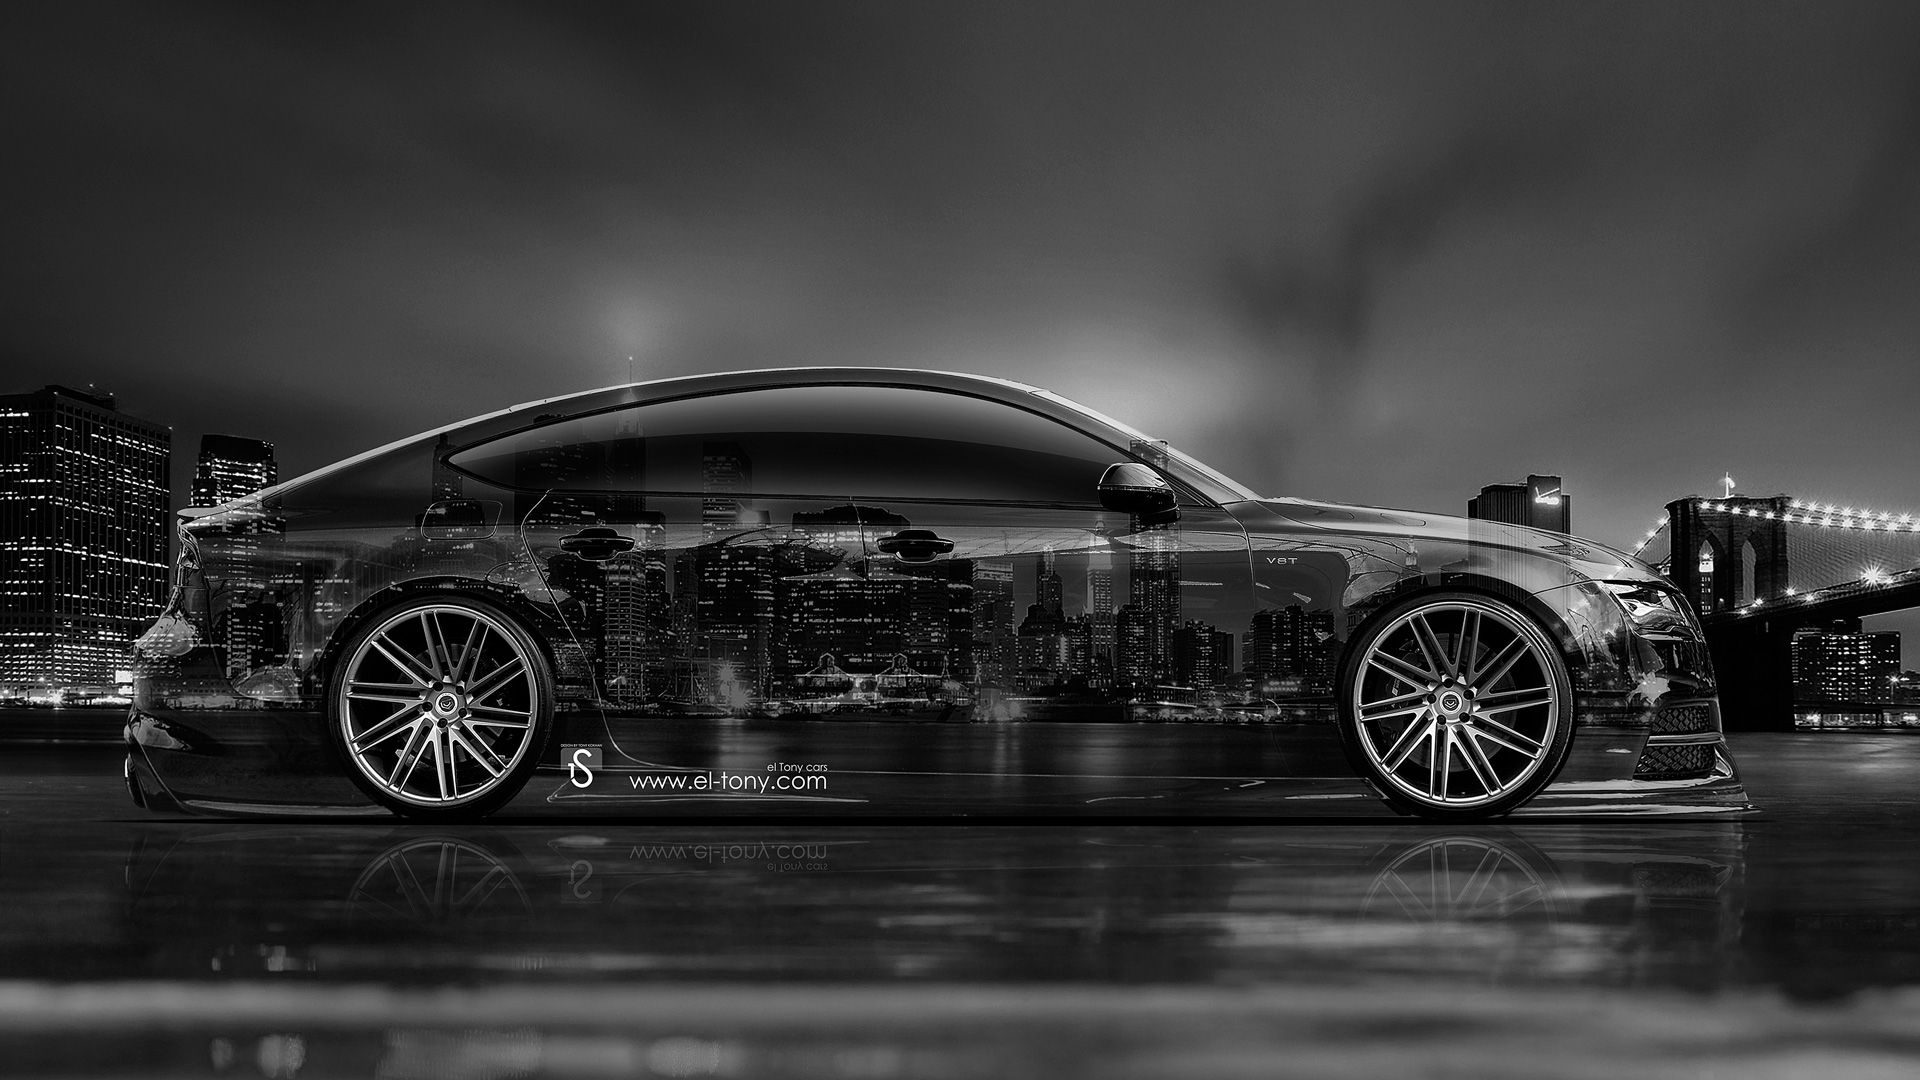 Ordinaire Audi S7 Side Crystal City Car 2014 « El Tony